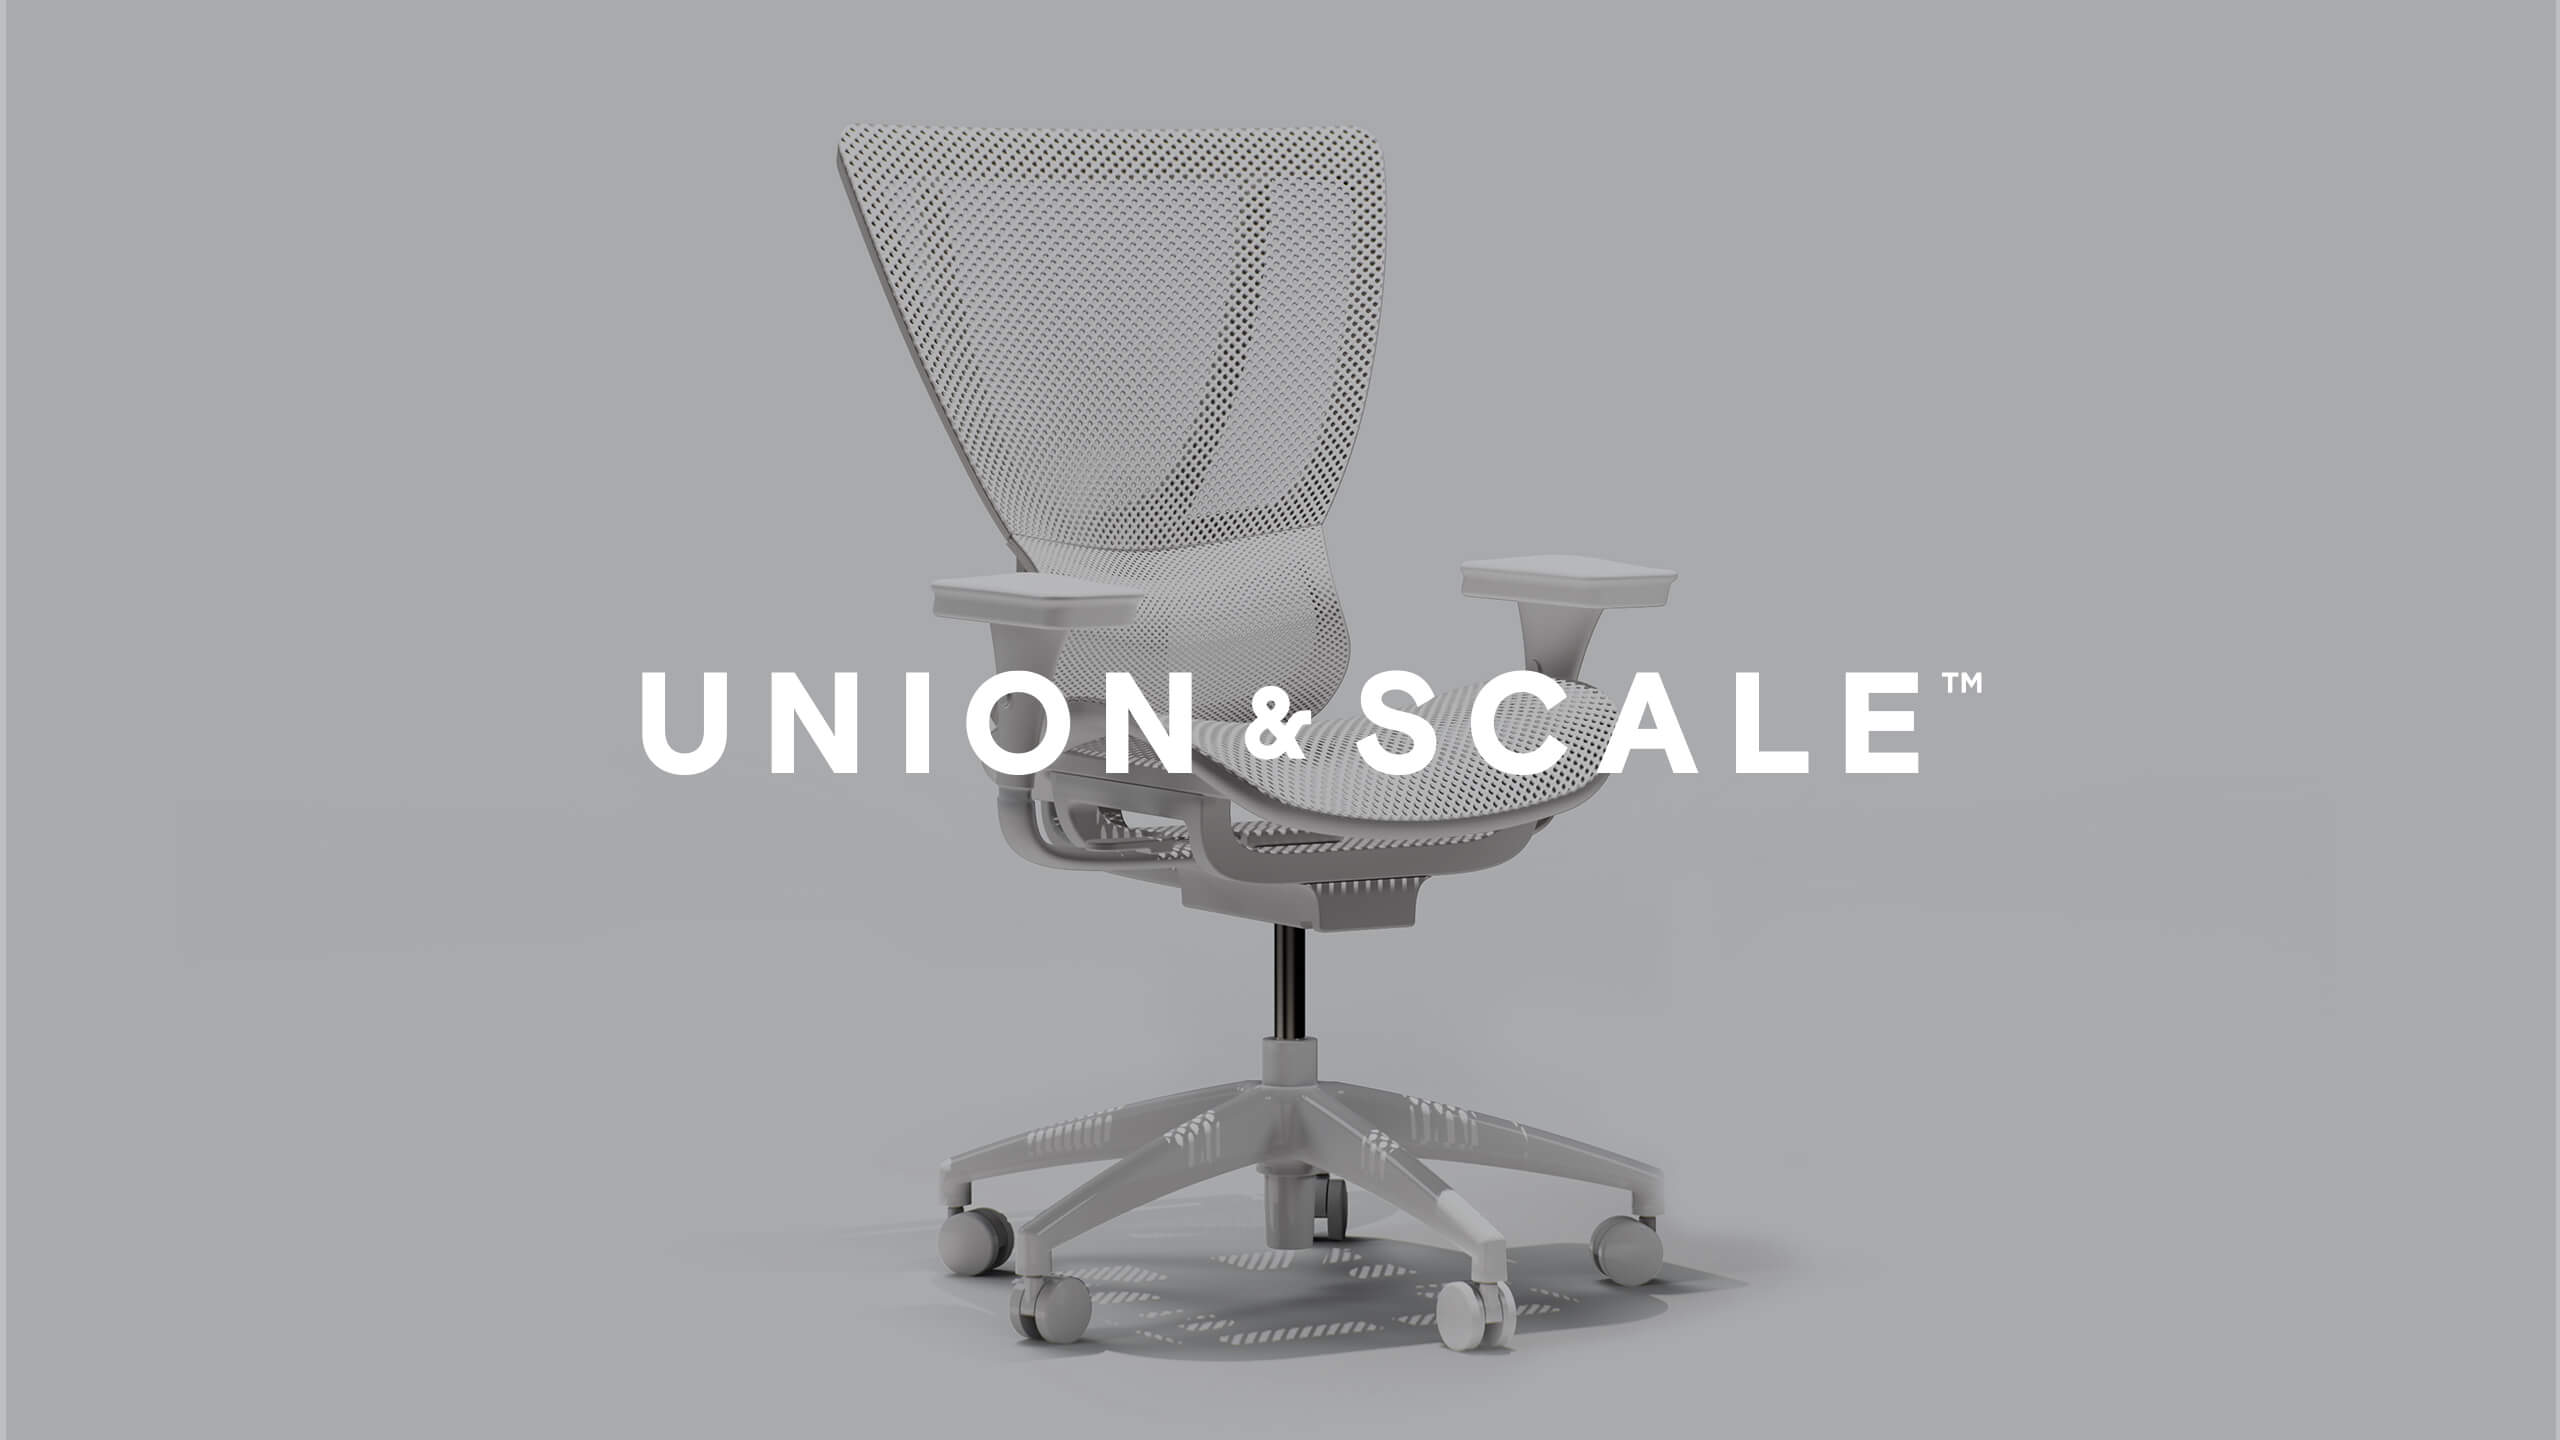 Union & Scale logo on top of a 3D CAD Render of a chair by Sprout Studios